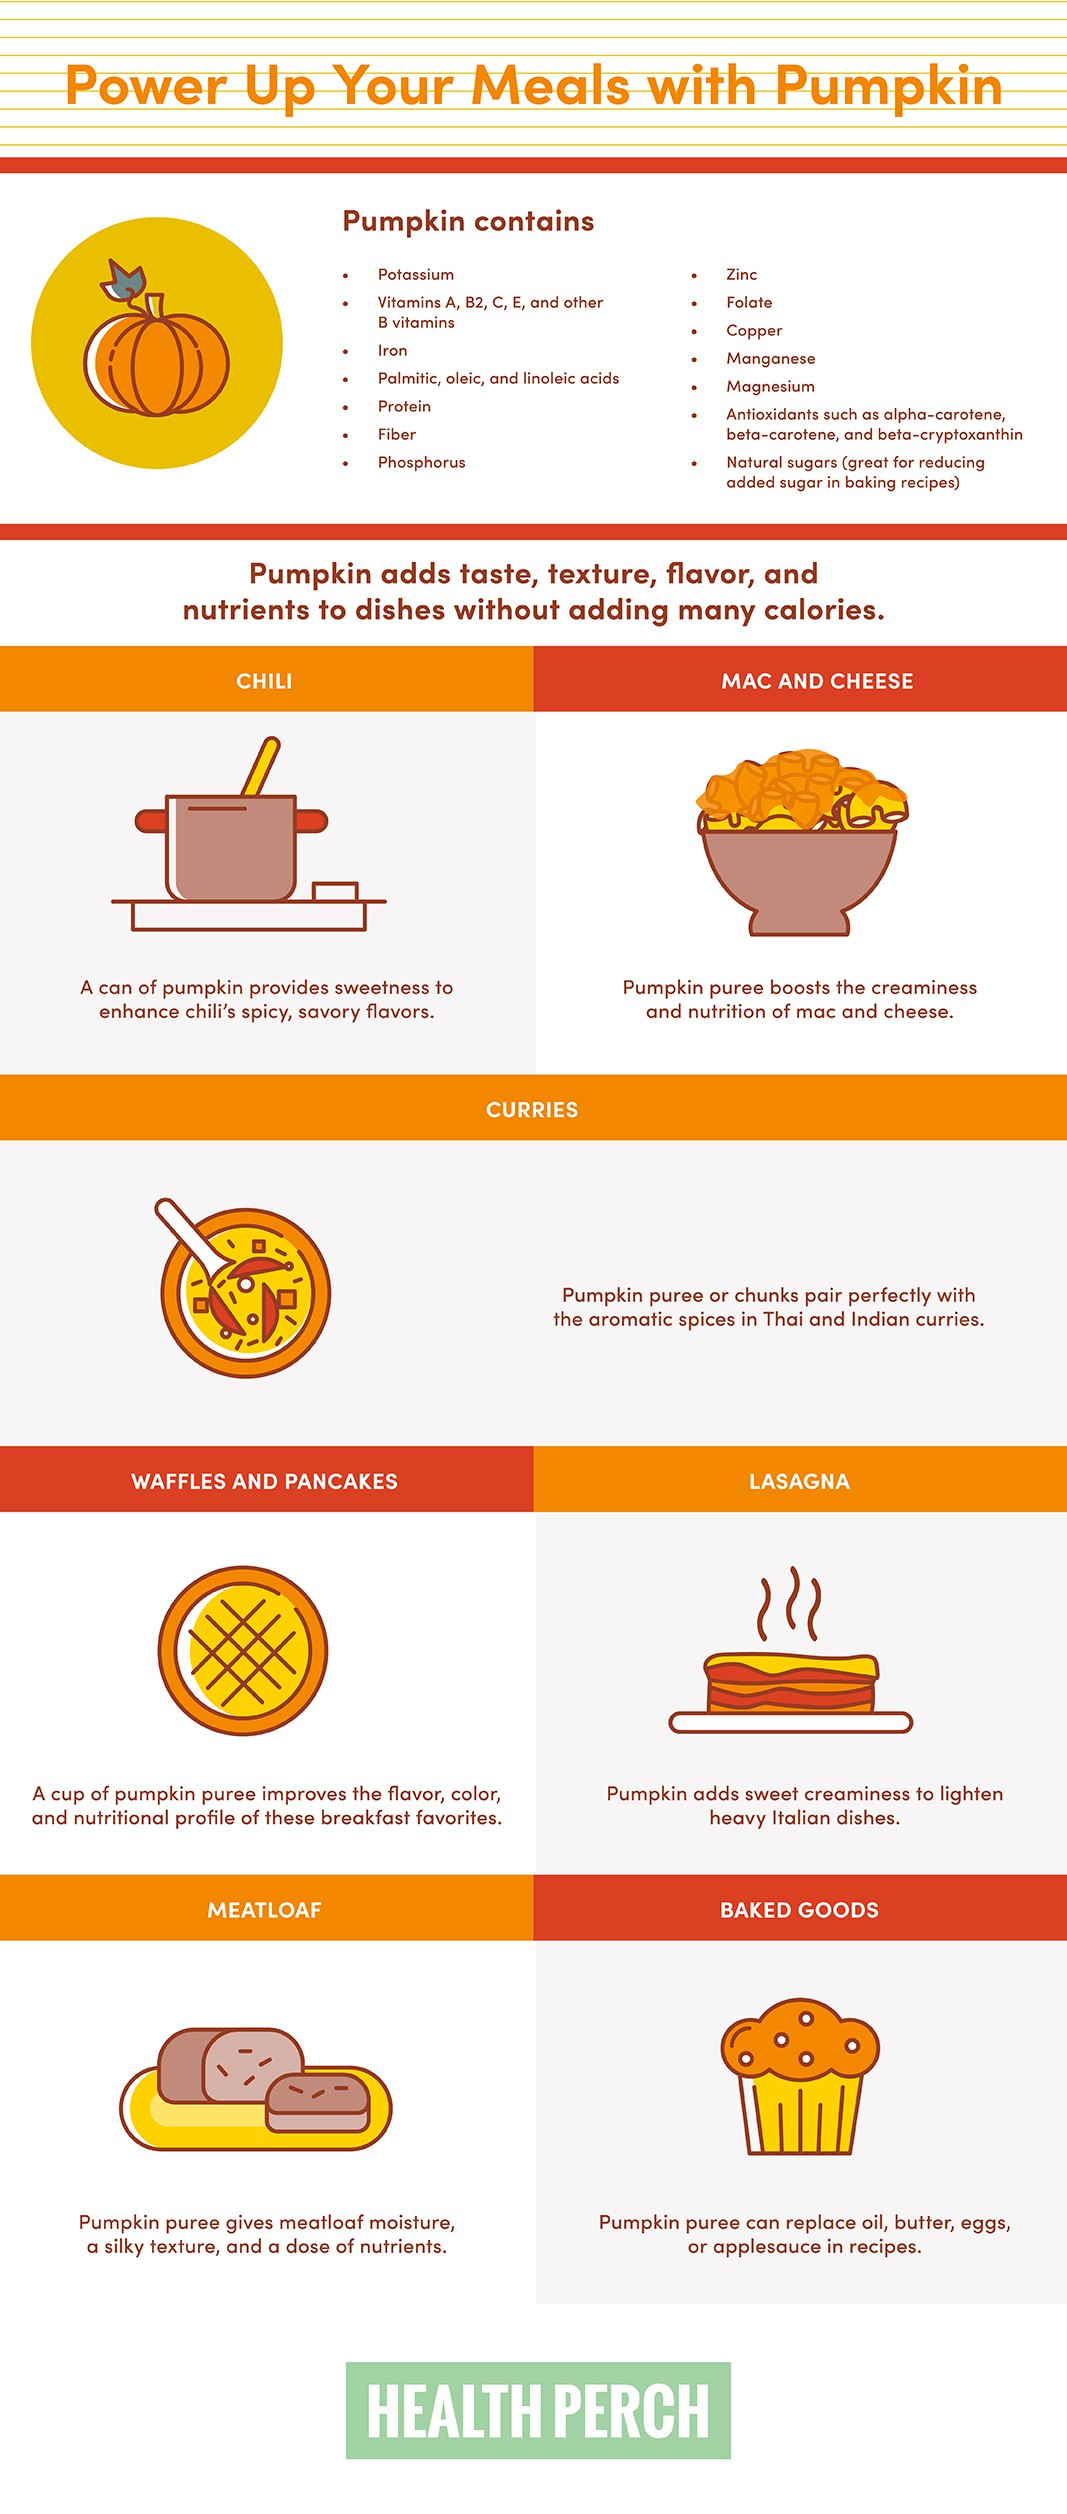 Power up your Meals with Pumpkin [Visual] | ecogreenlove